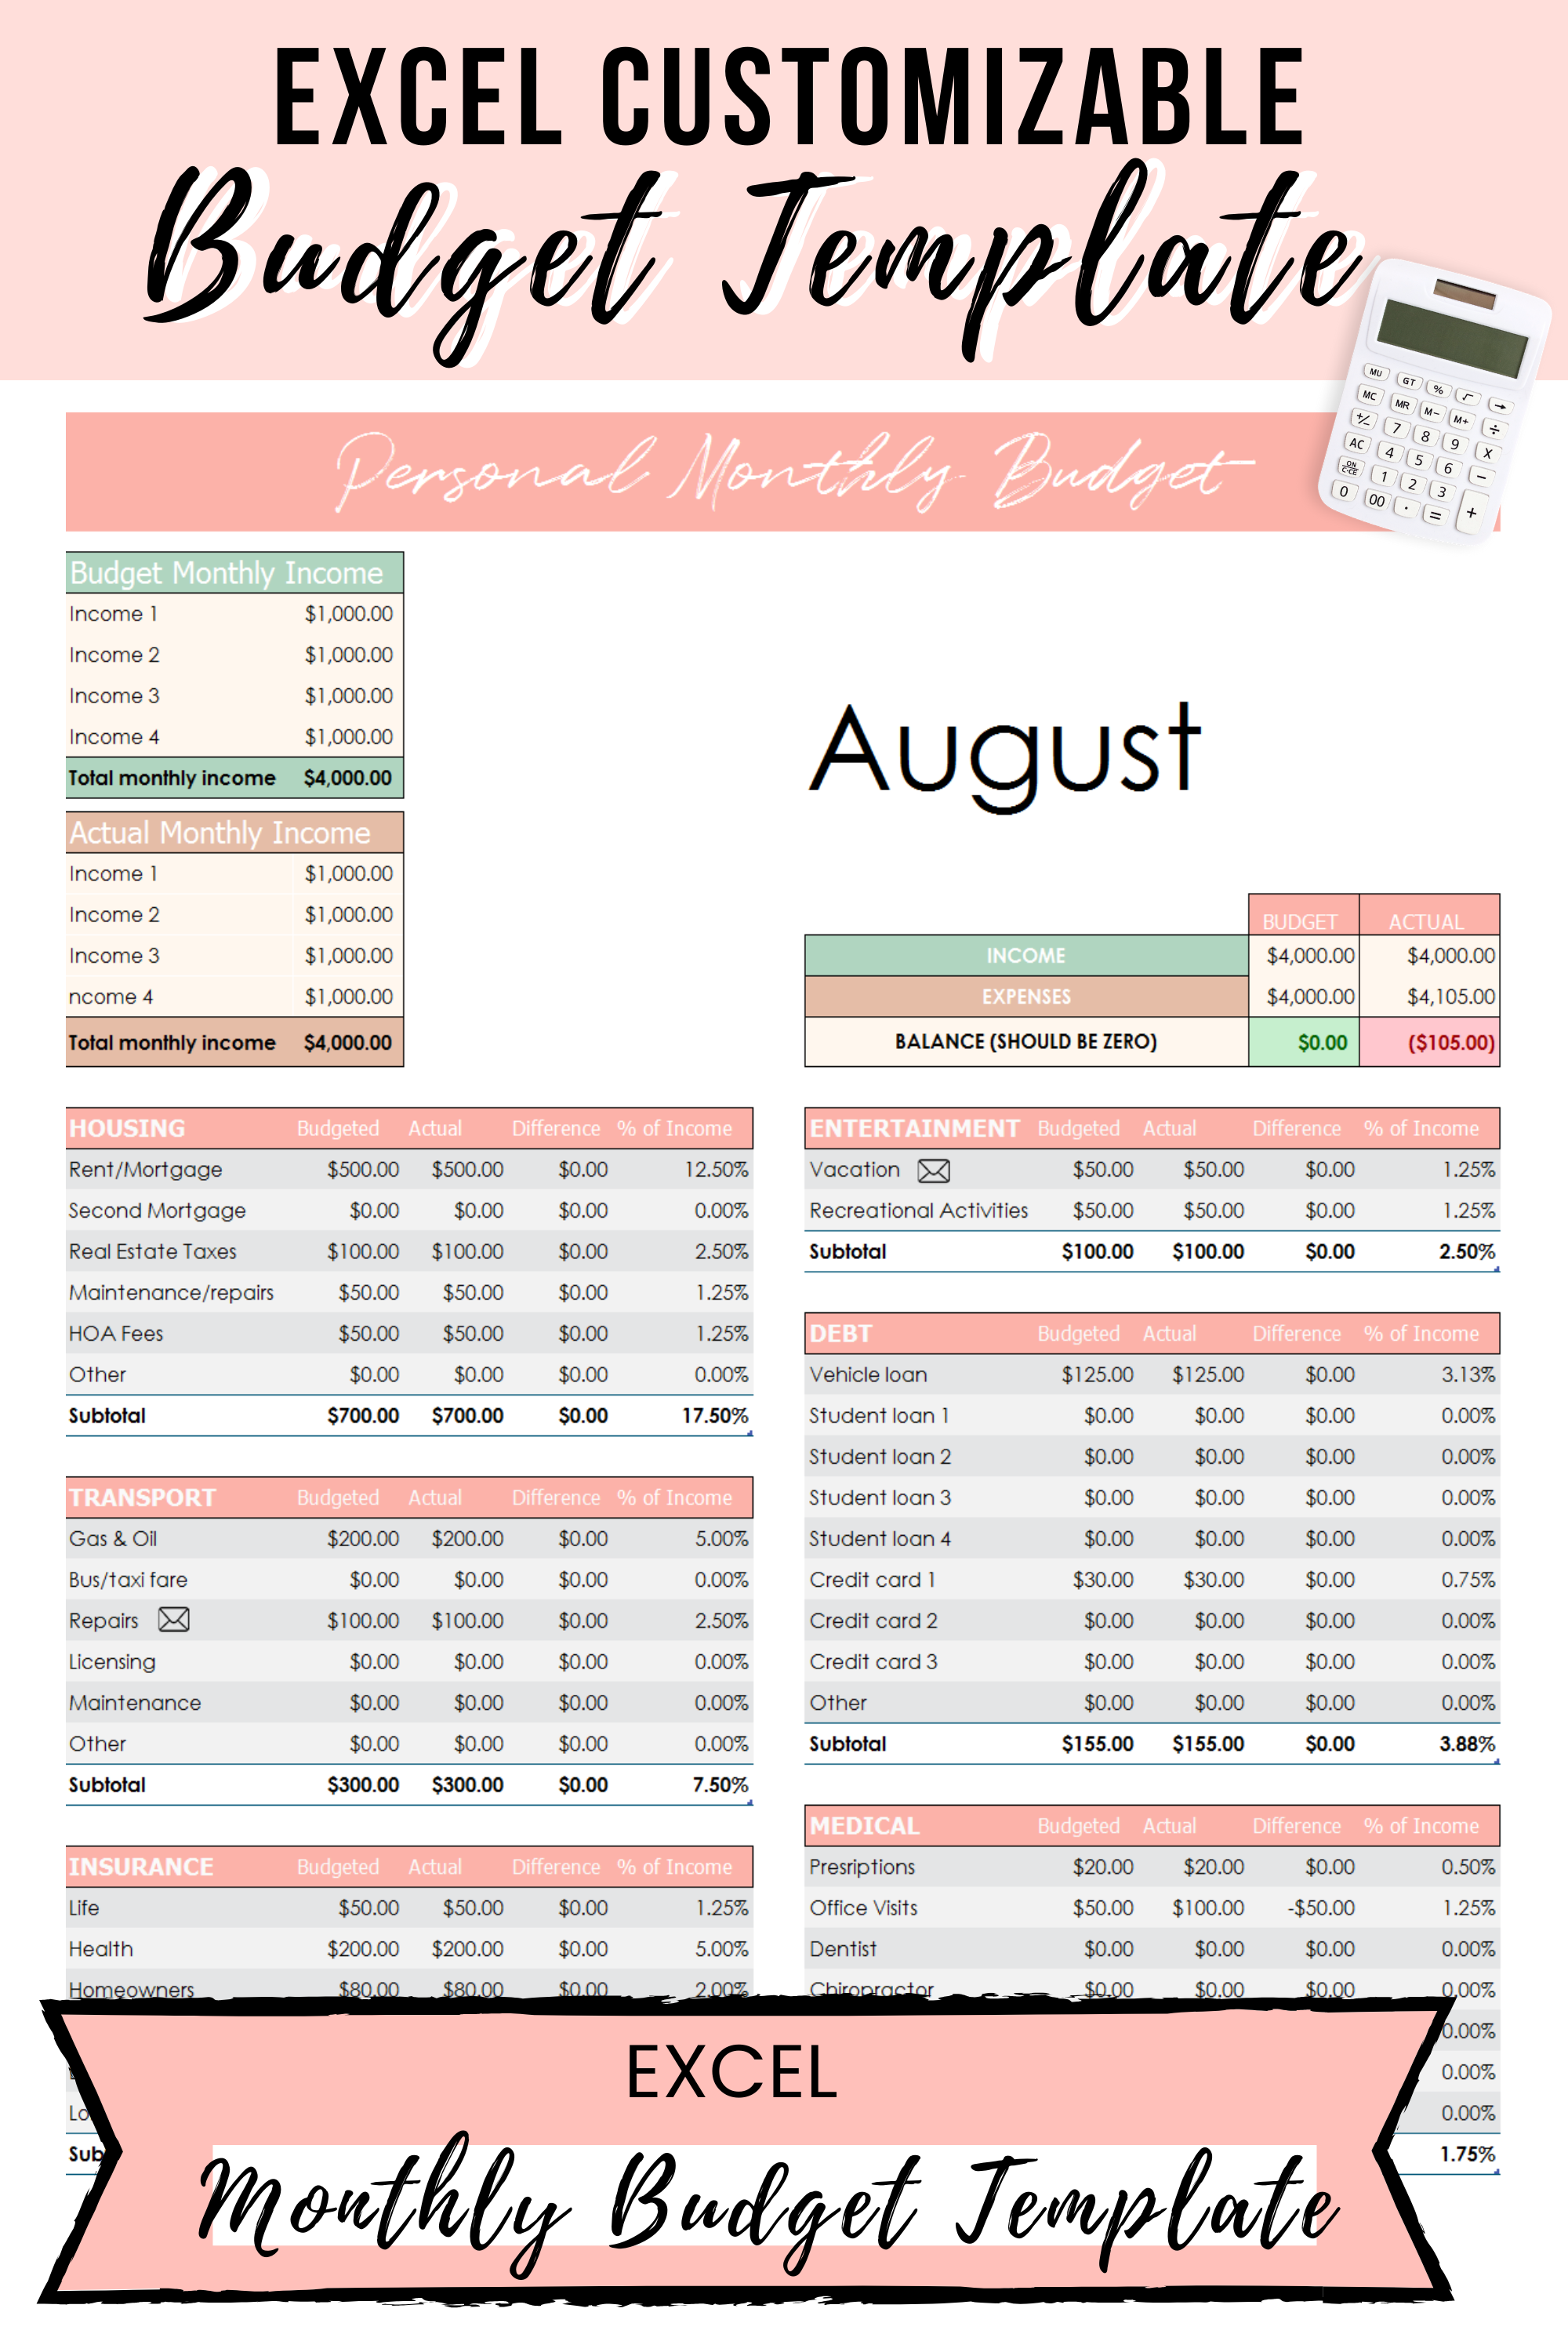 Excel Budget Template Dave Ramsey Budget Template Digital Etsy In 2020 Excel Budget Excel Budget Template Monthly Budget Template